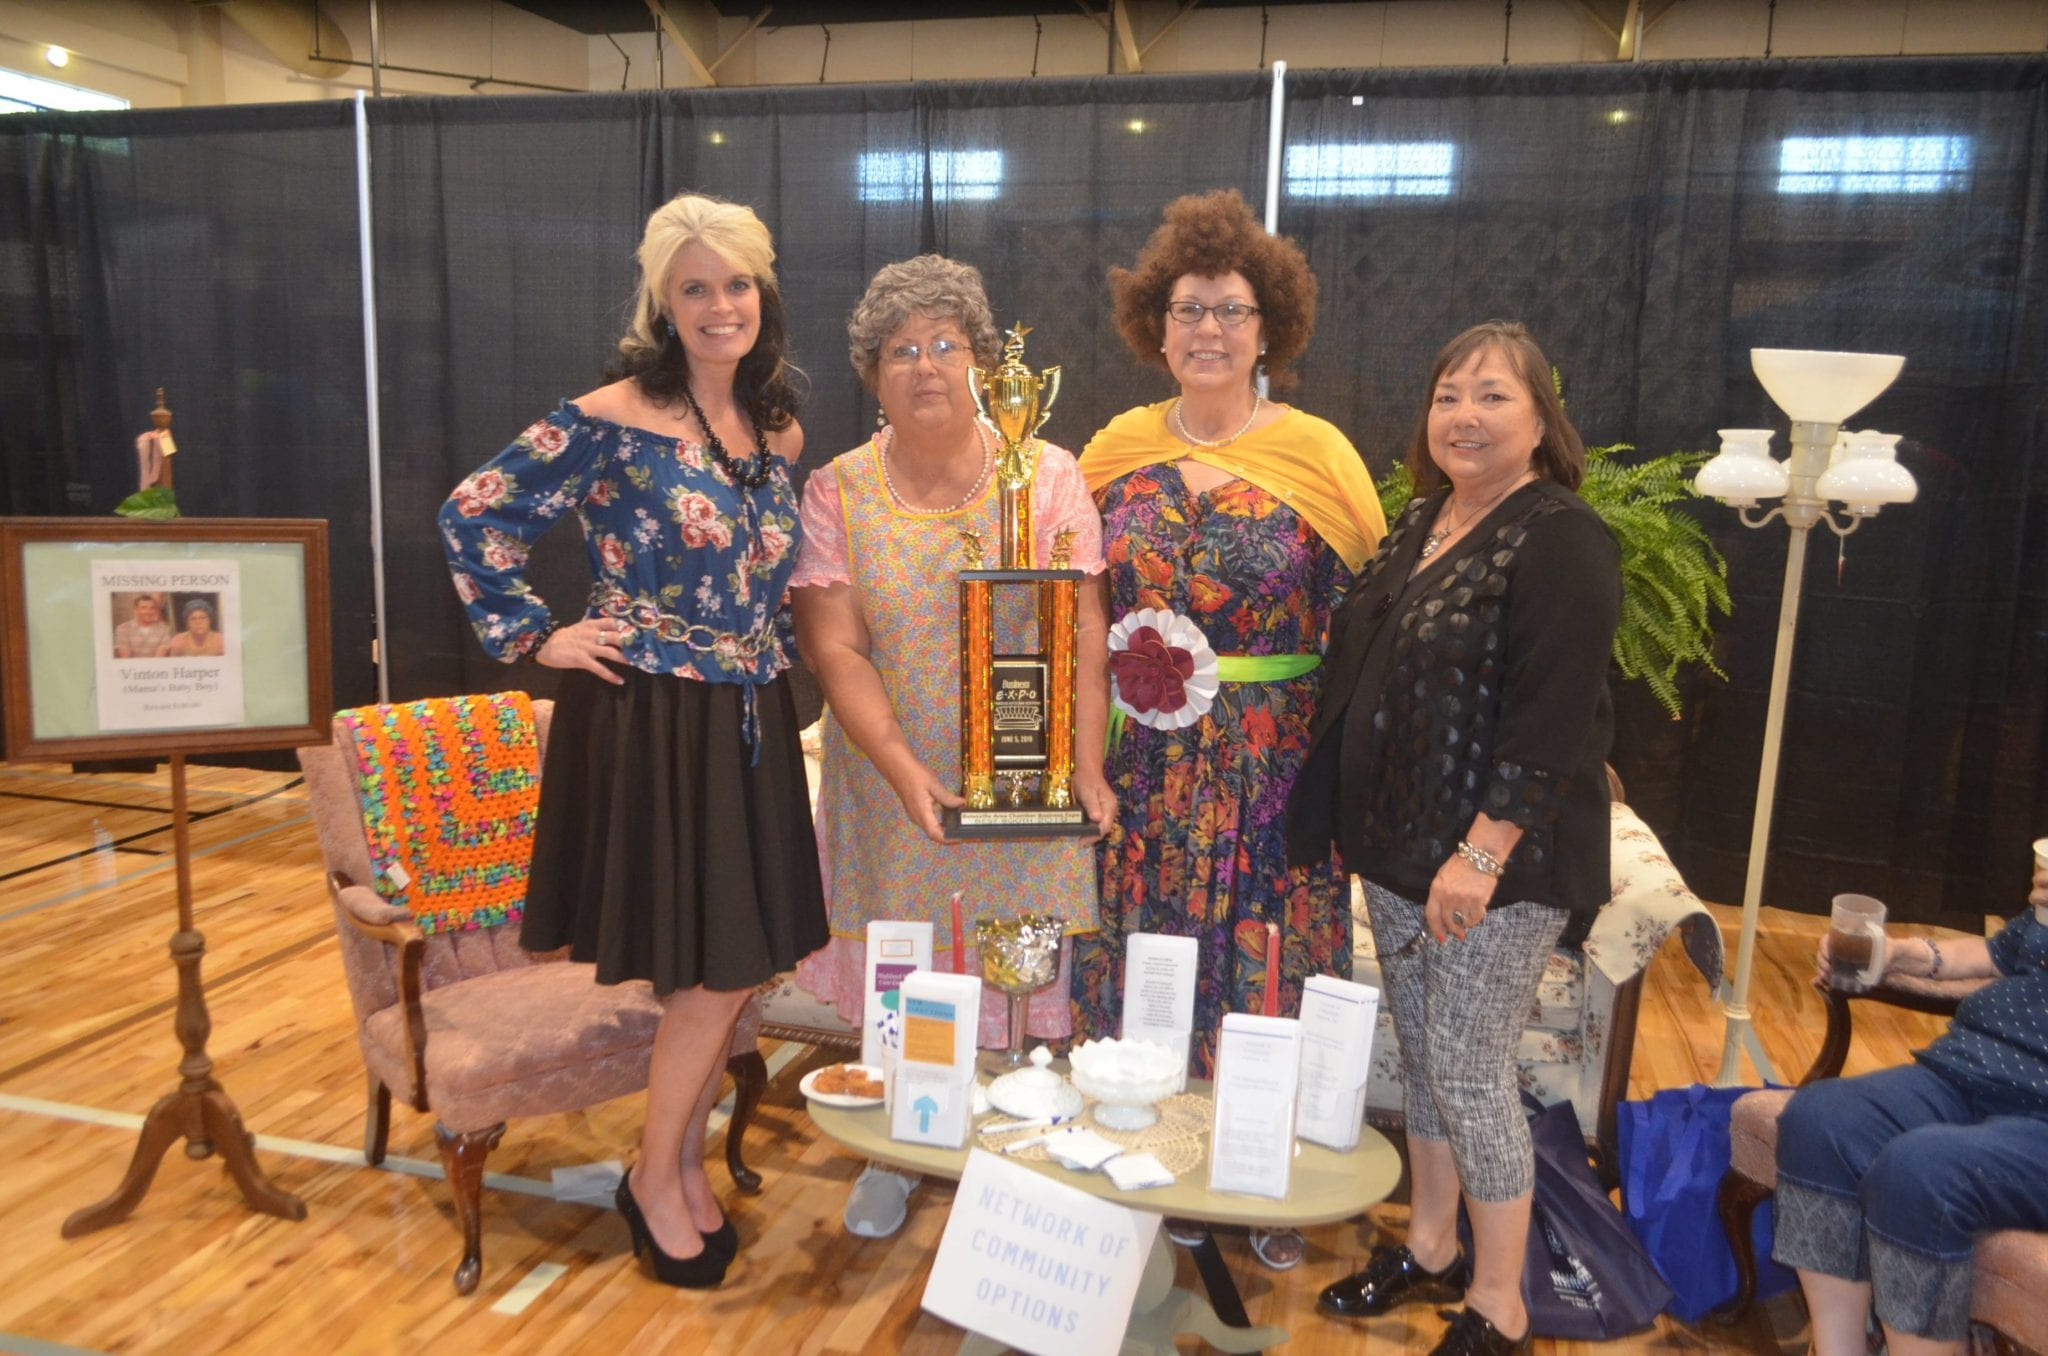 Expo sees record number of vendors